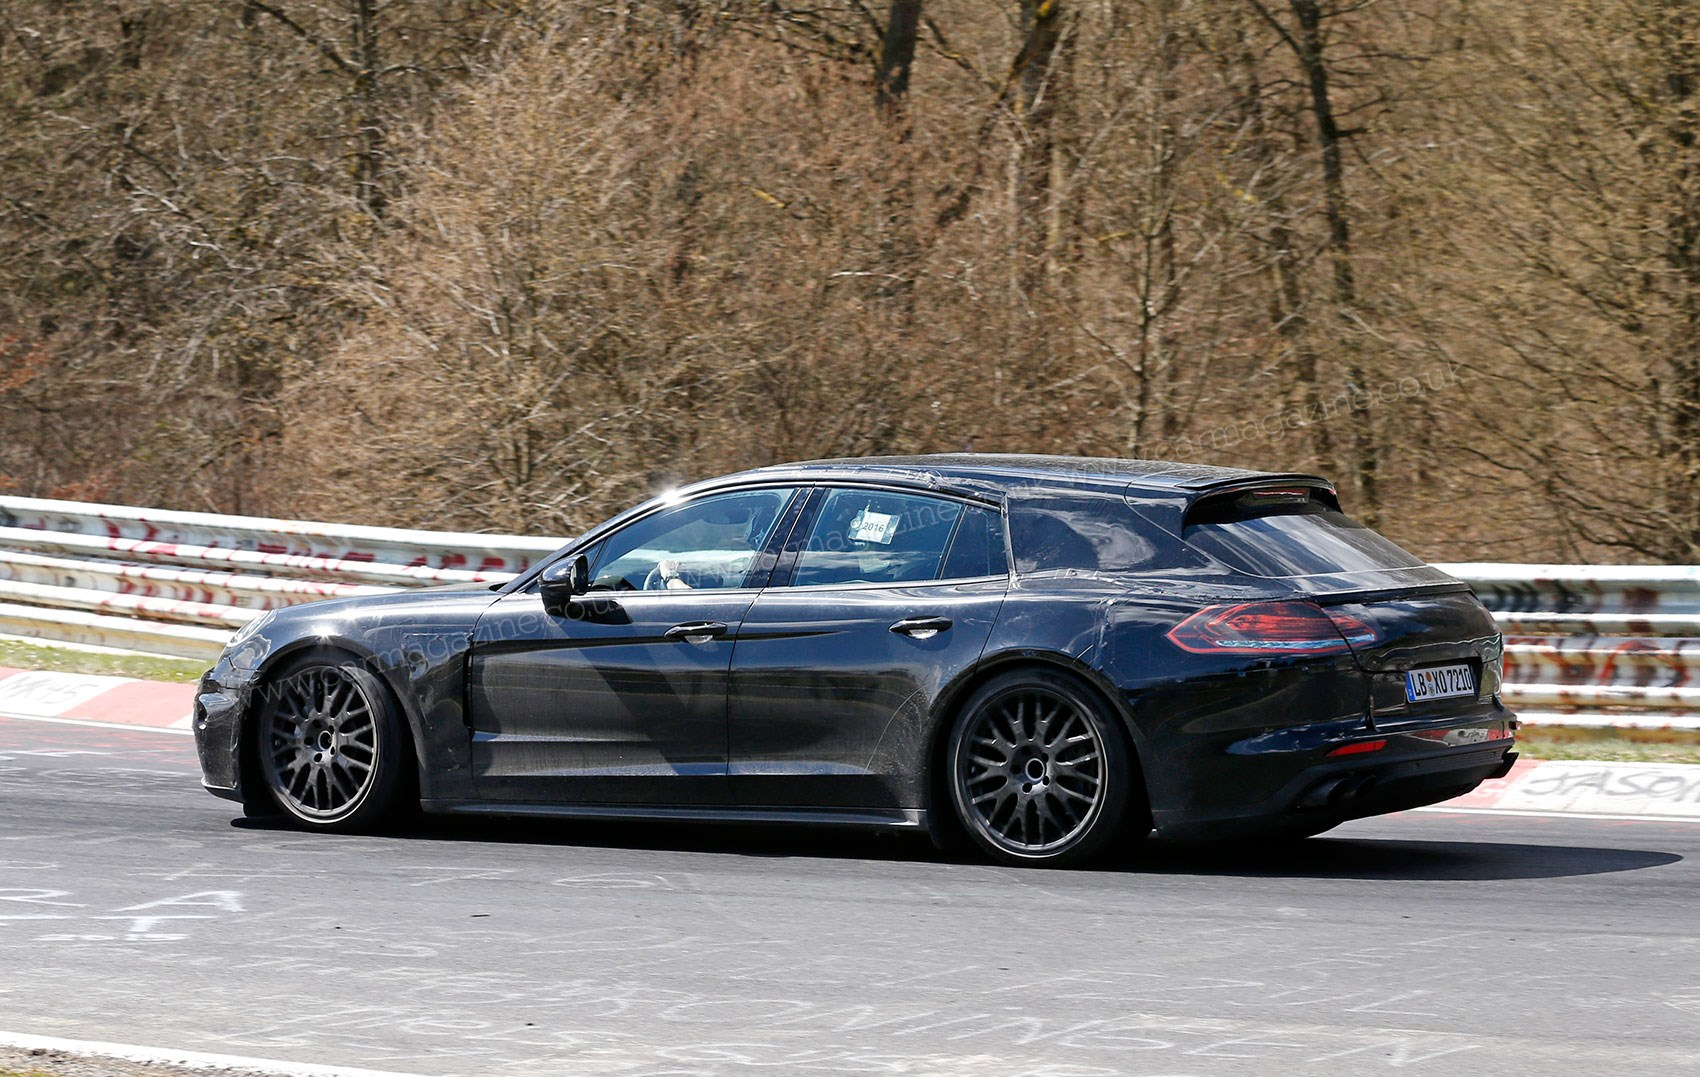 Porsche Panamera G2 Hybrids And Wagon On The Way By Car Magazine